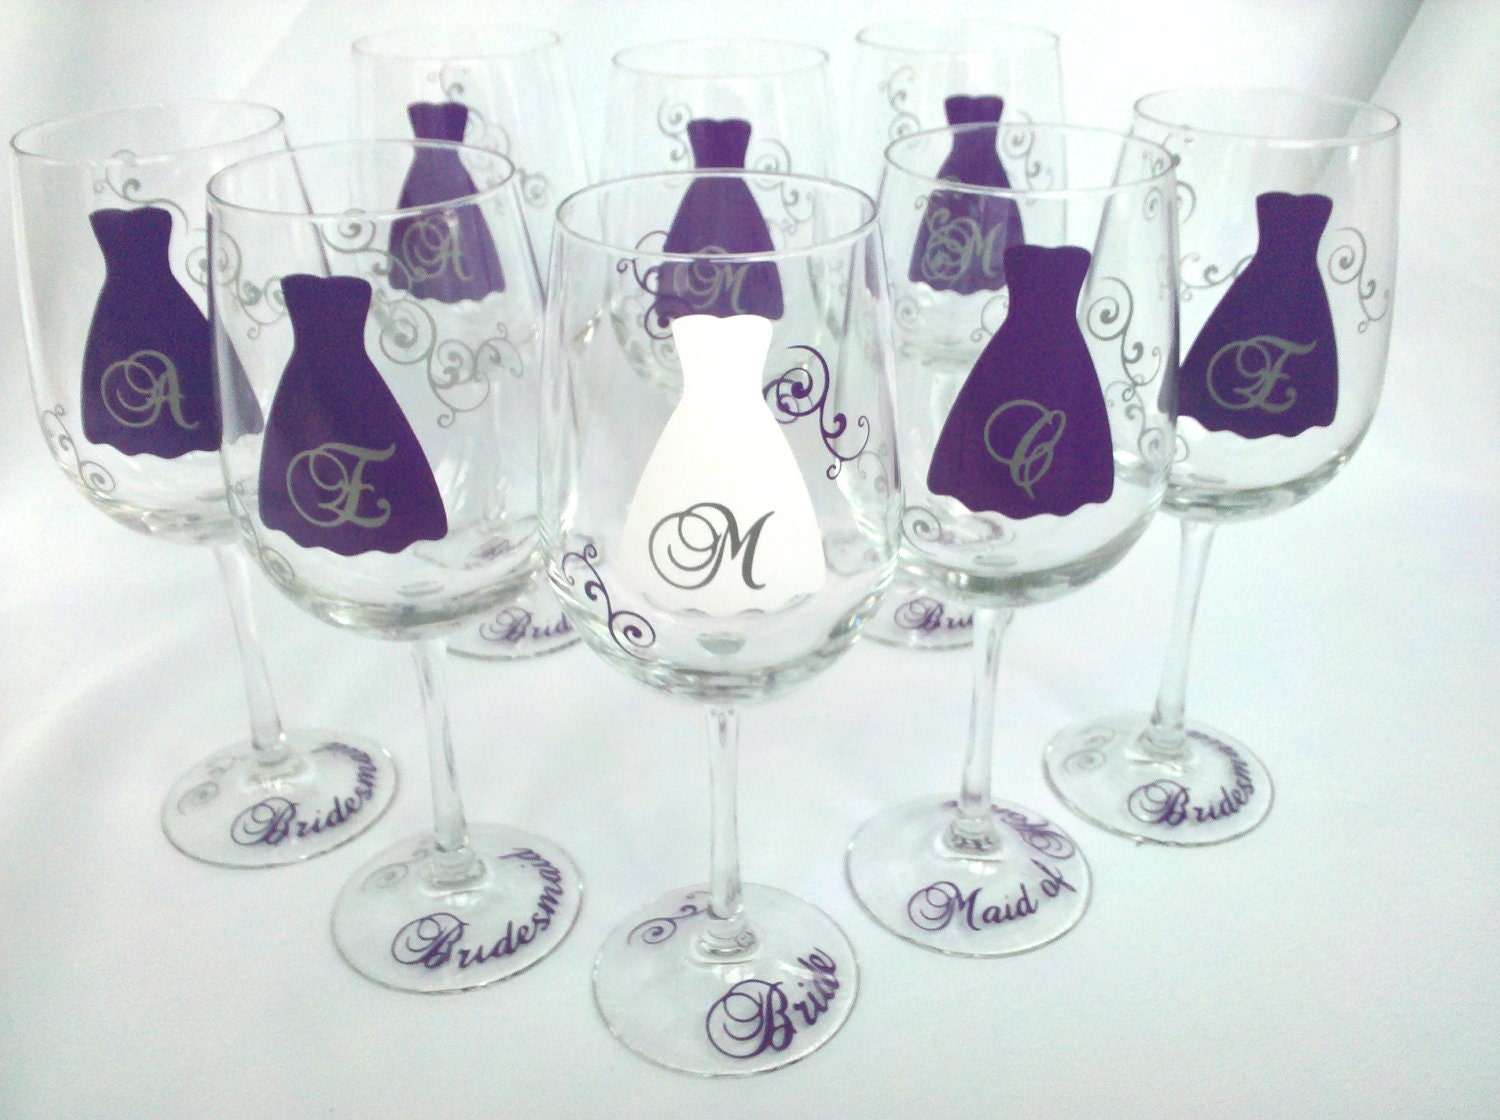 Personalised Wedding Gift Glasses : Bridesmaid wine glasses, set of 6 personalized wedding party gift with ...